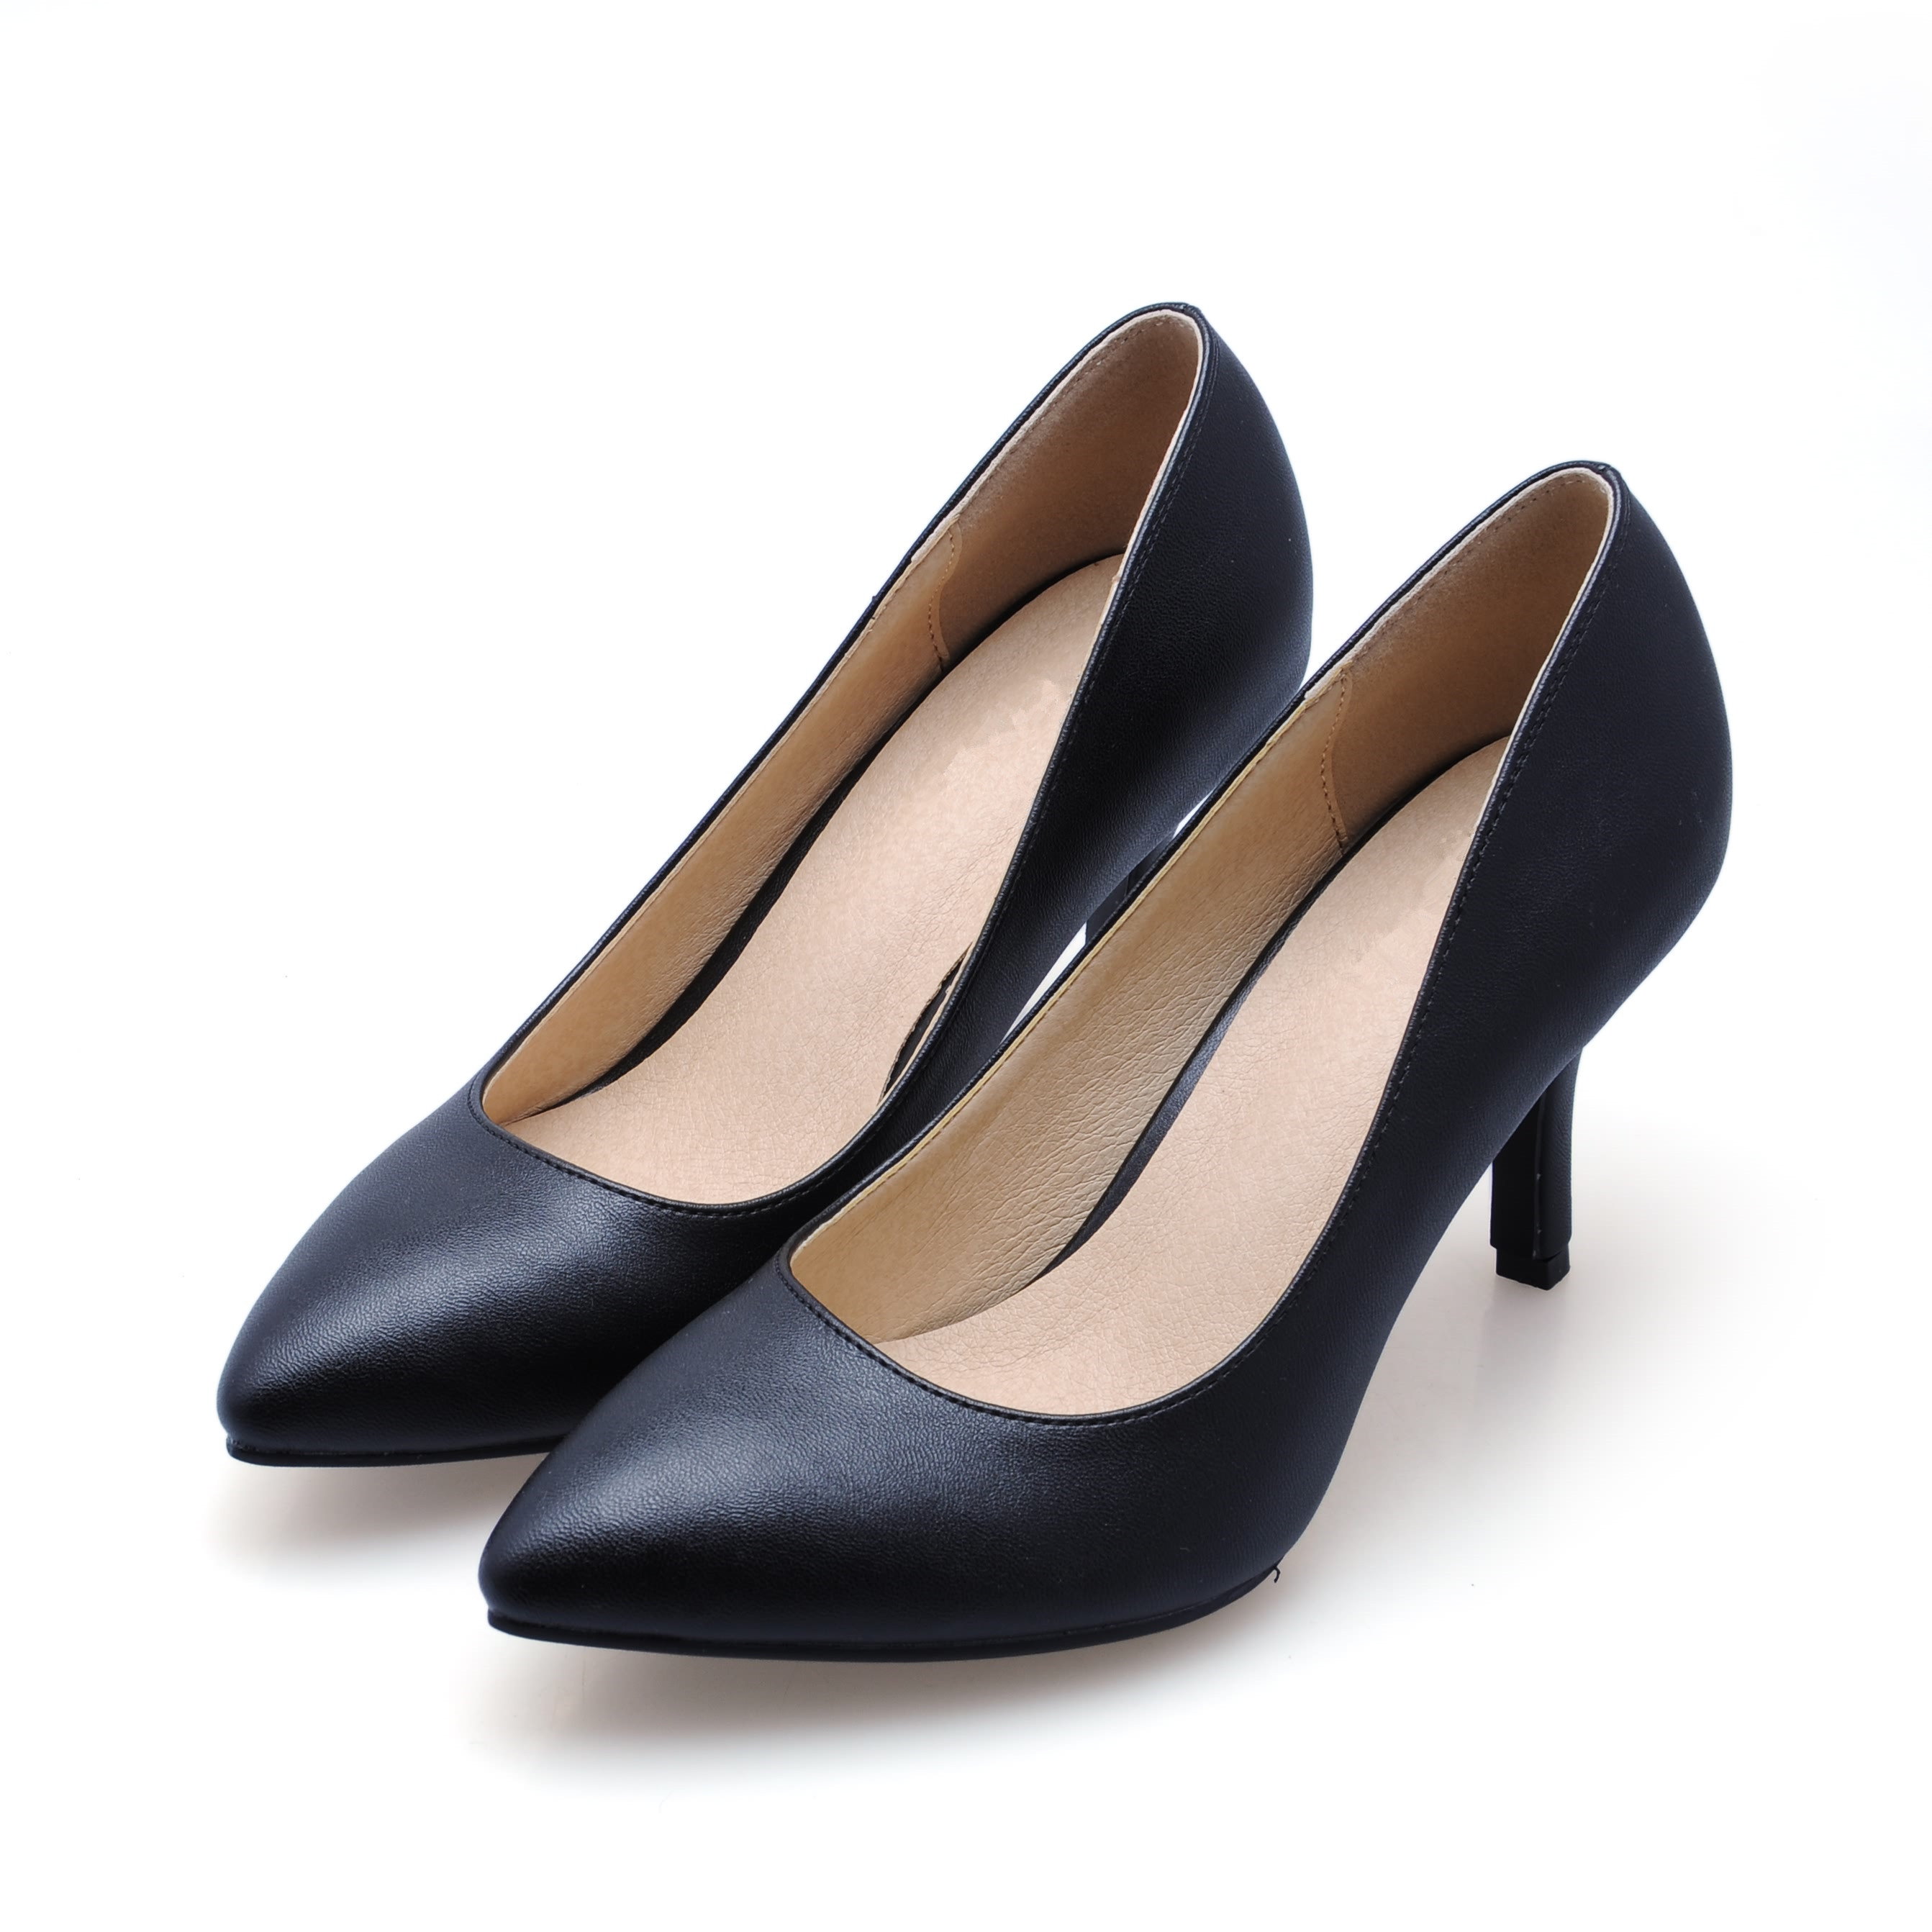 New 2017 Women Genuine Leather High Heels Shoes Sexy Red Bride Party Thin Heel Pumps Pointed Toe Office Shoes Big Size SMYBK-004  allbitefo fashion sexy thin heels pointed toe women pumps full genuine leather platform office ladies shoes high heel shoes